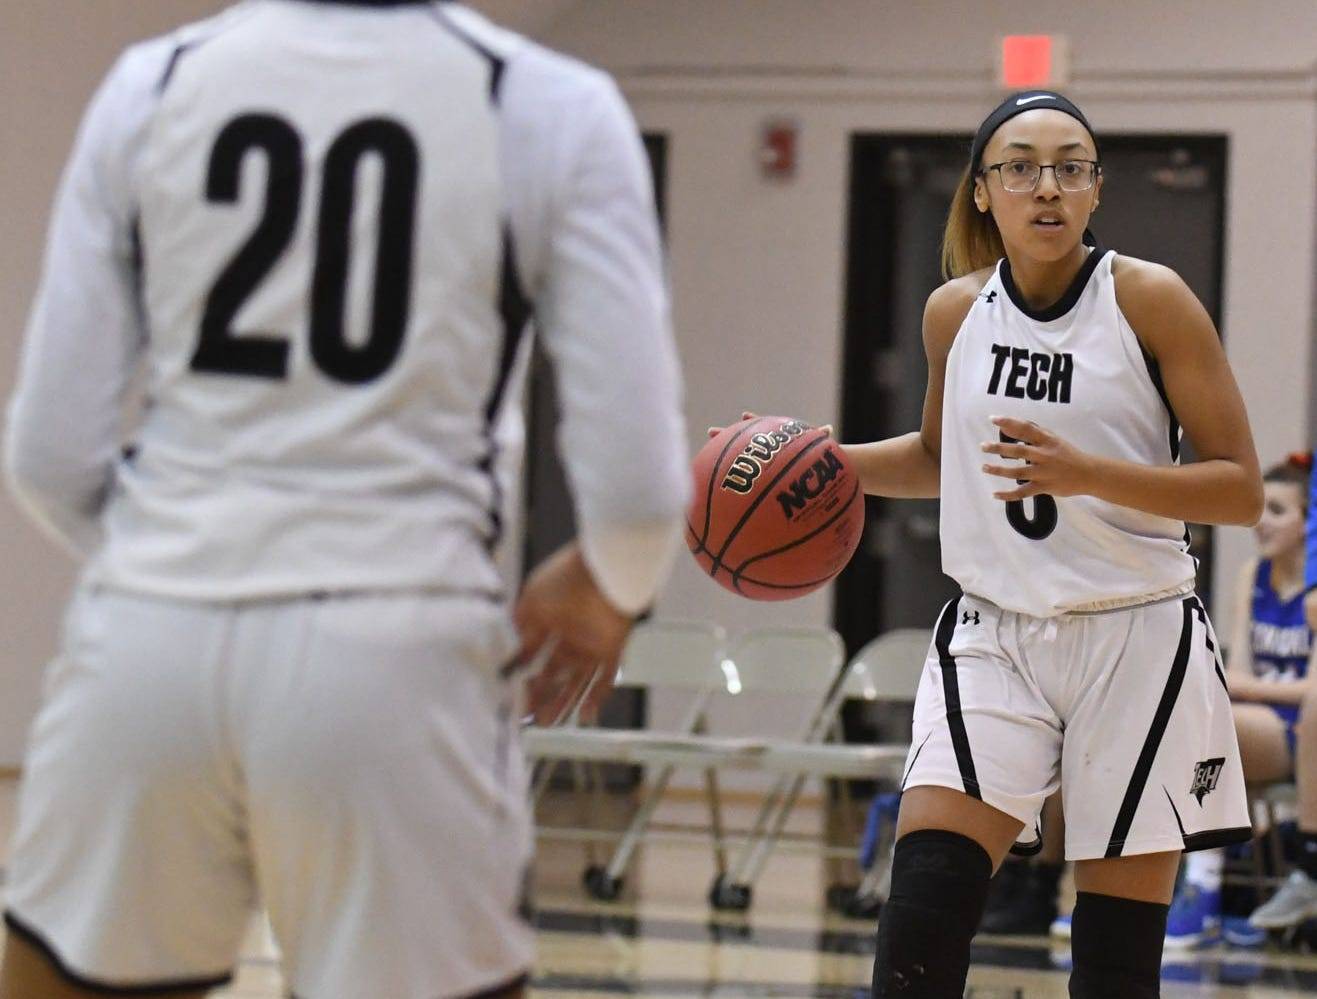 Sussex Tech's Airelle Parker with the ball against Sussex Central on Thursday, Jan. 31, 2019.